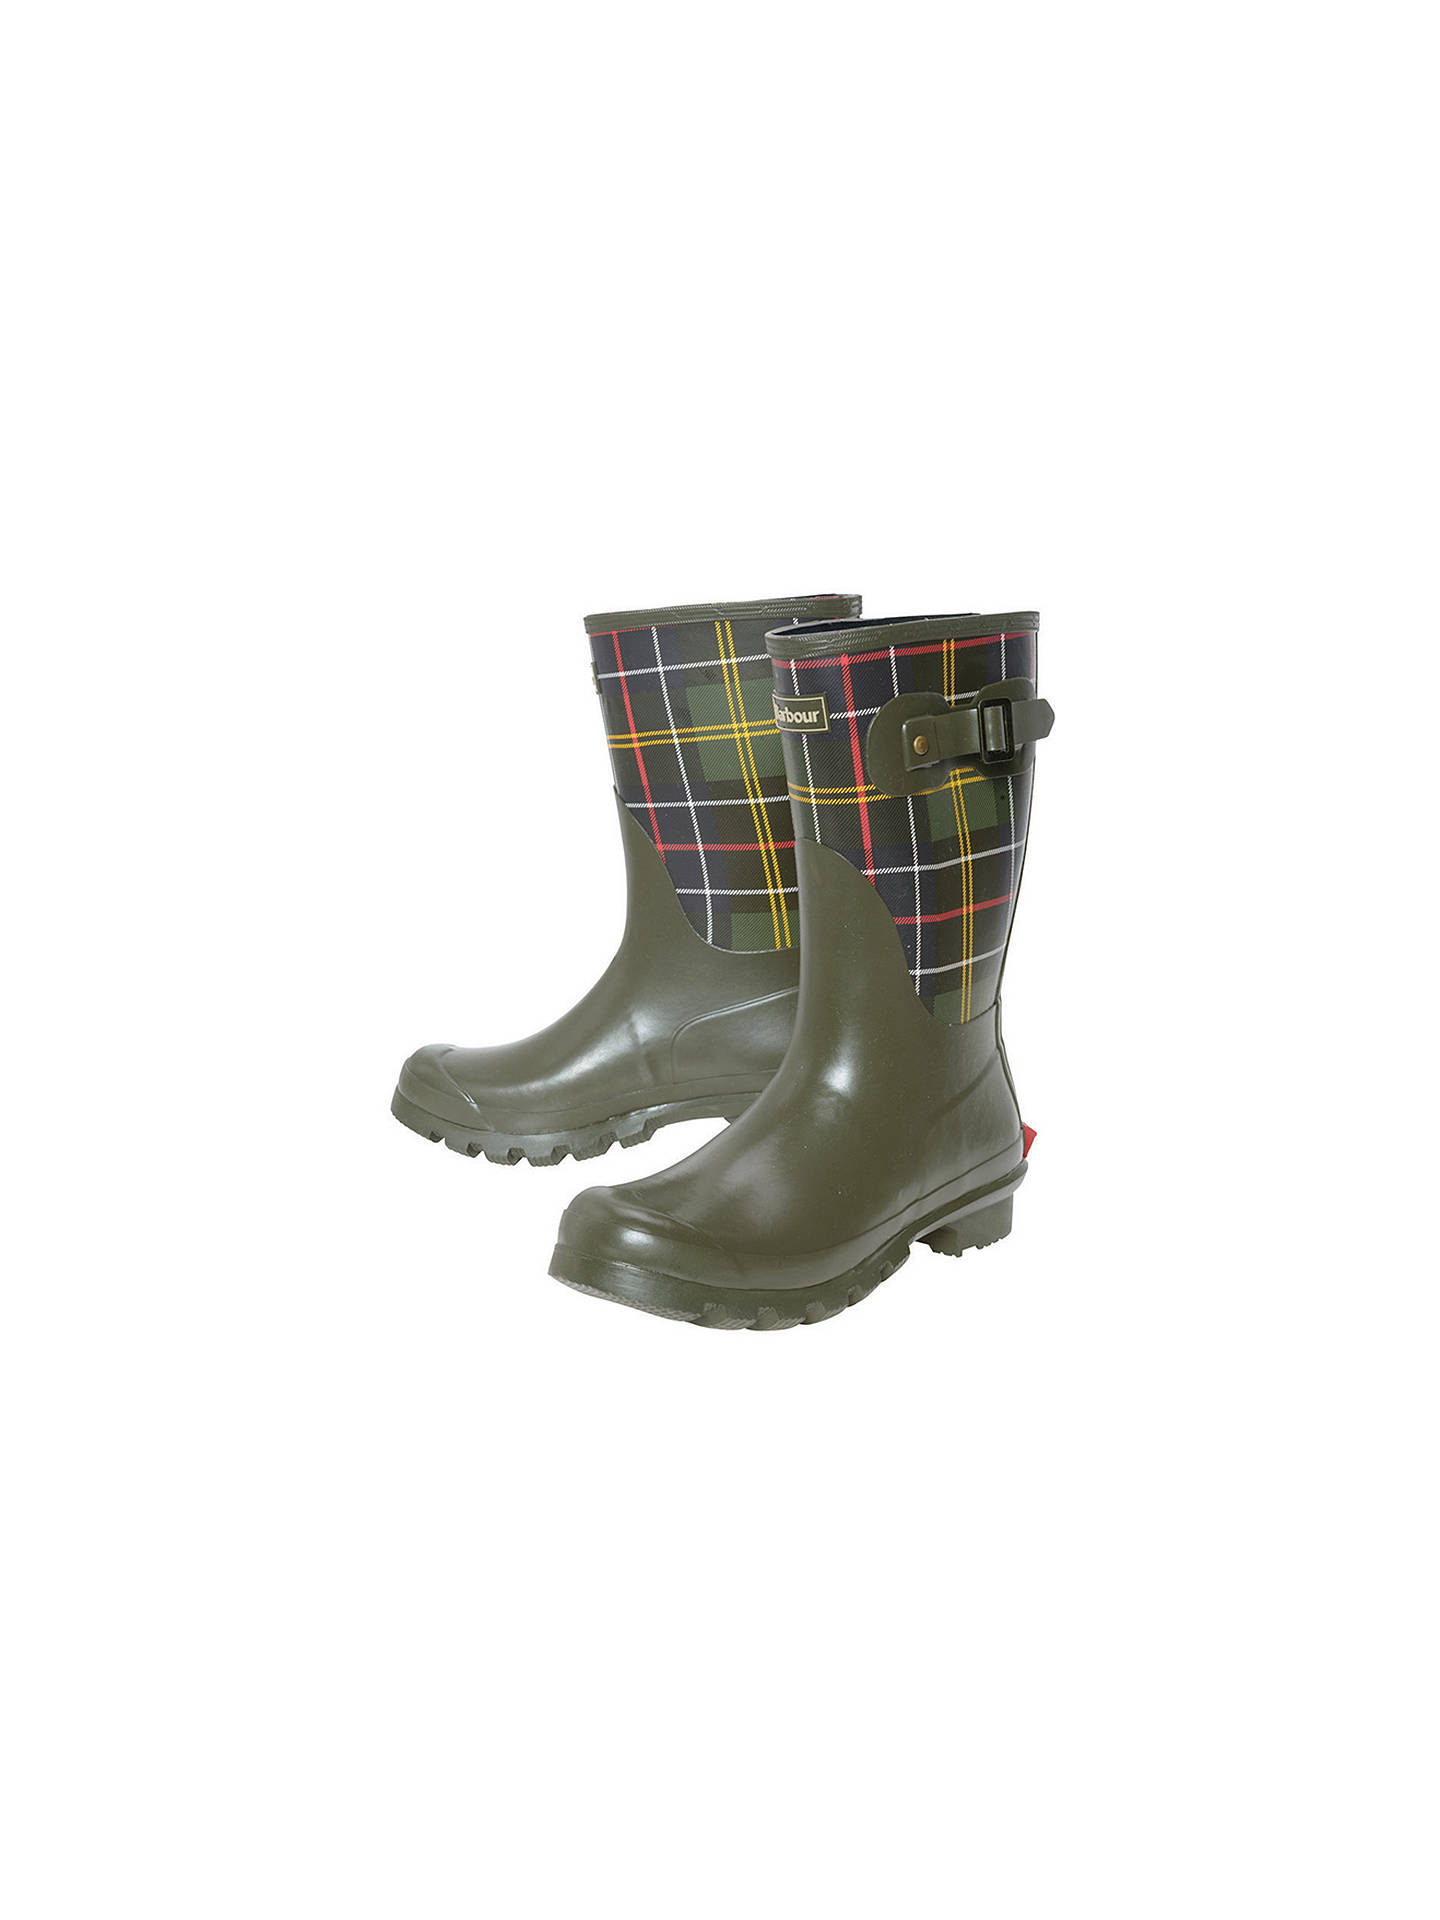 74fe0b3f6 Barbour Short Classic Wellington Boot, Tartan at John Lewis & Partners